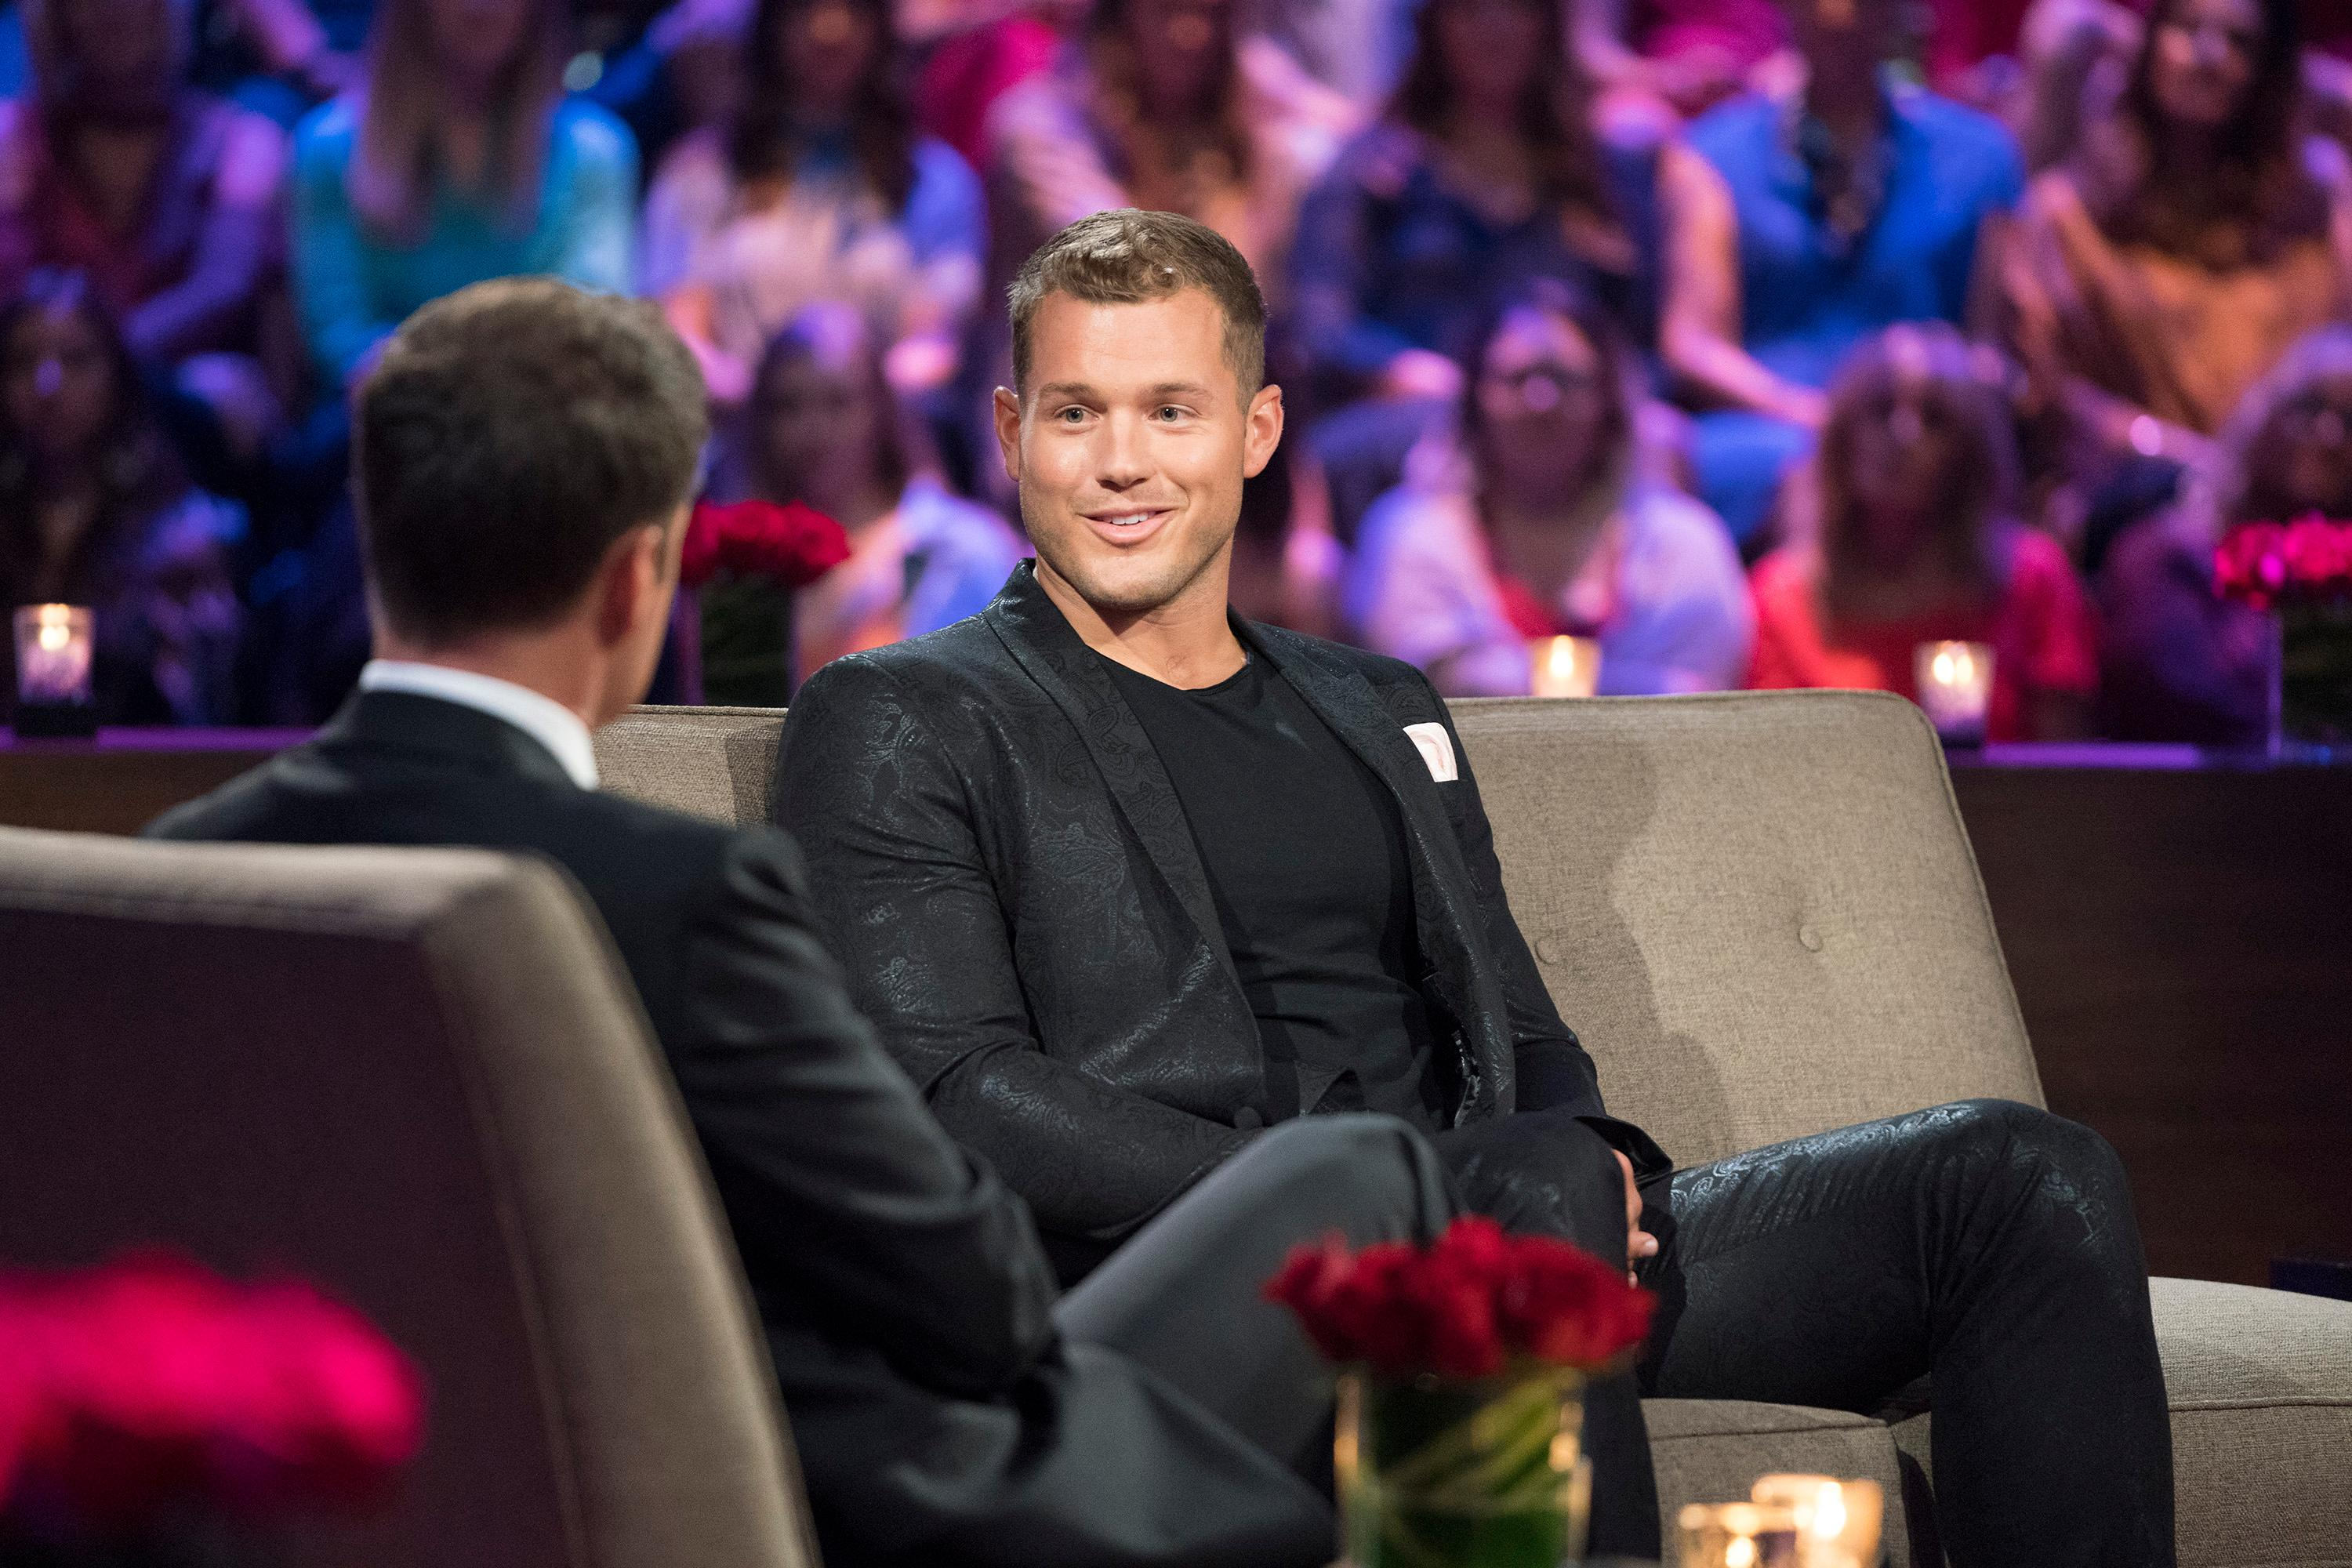 The poor guy was sent home after hometown dates and confessing his love to Becca, which we had to relive during an emotional Men Tell All episode, where Colton broke down about how hard it was to broadcast his virginity, and his struggles with feeling like less of a man because of it. (Image: ABC/Paul Hebert)